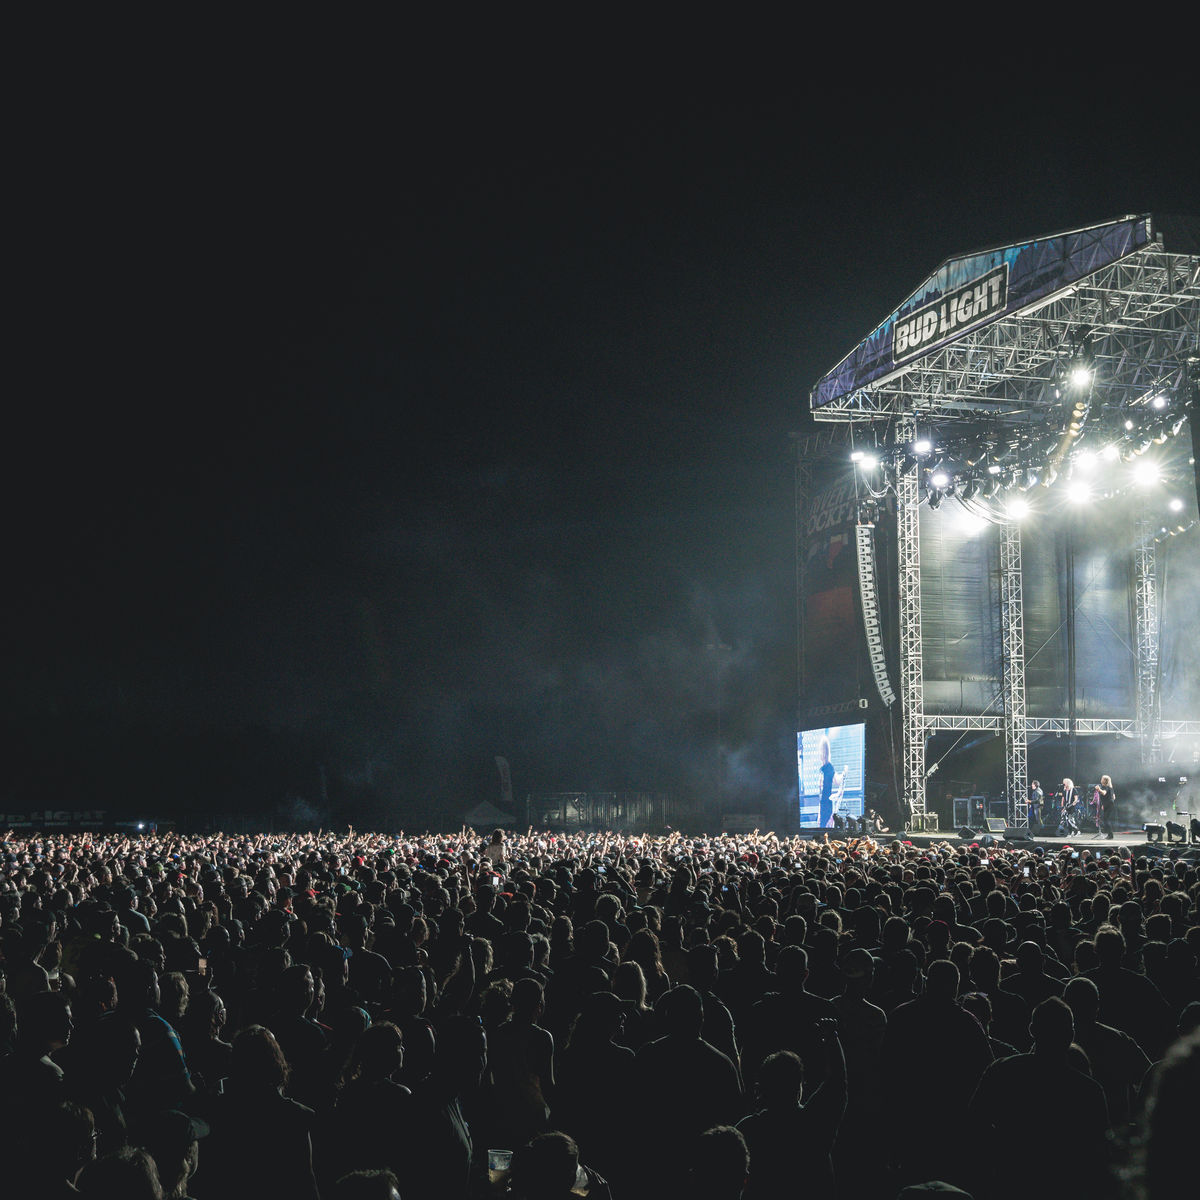 Image from the side of performers on stage at night